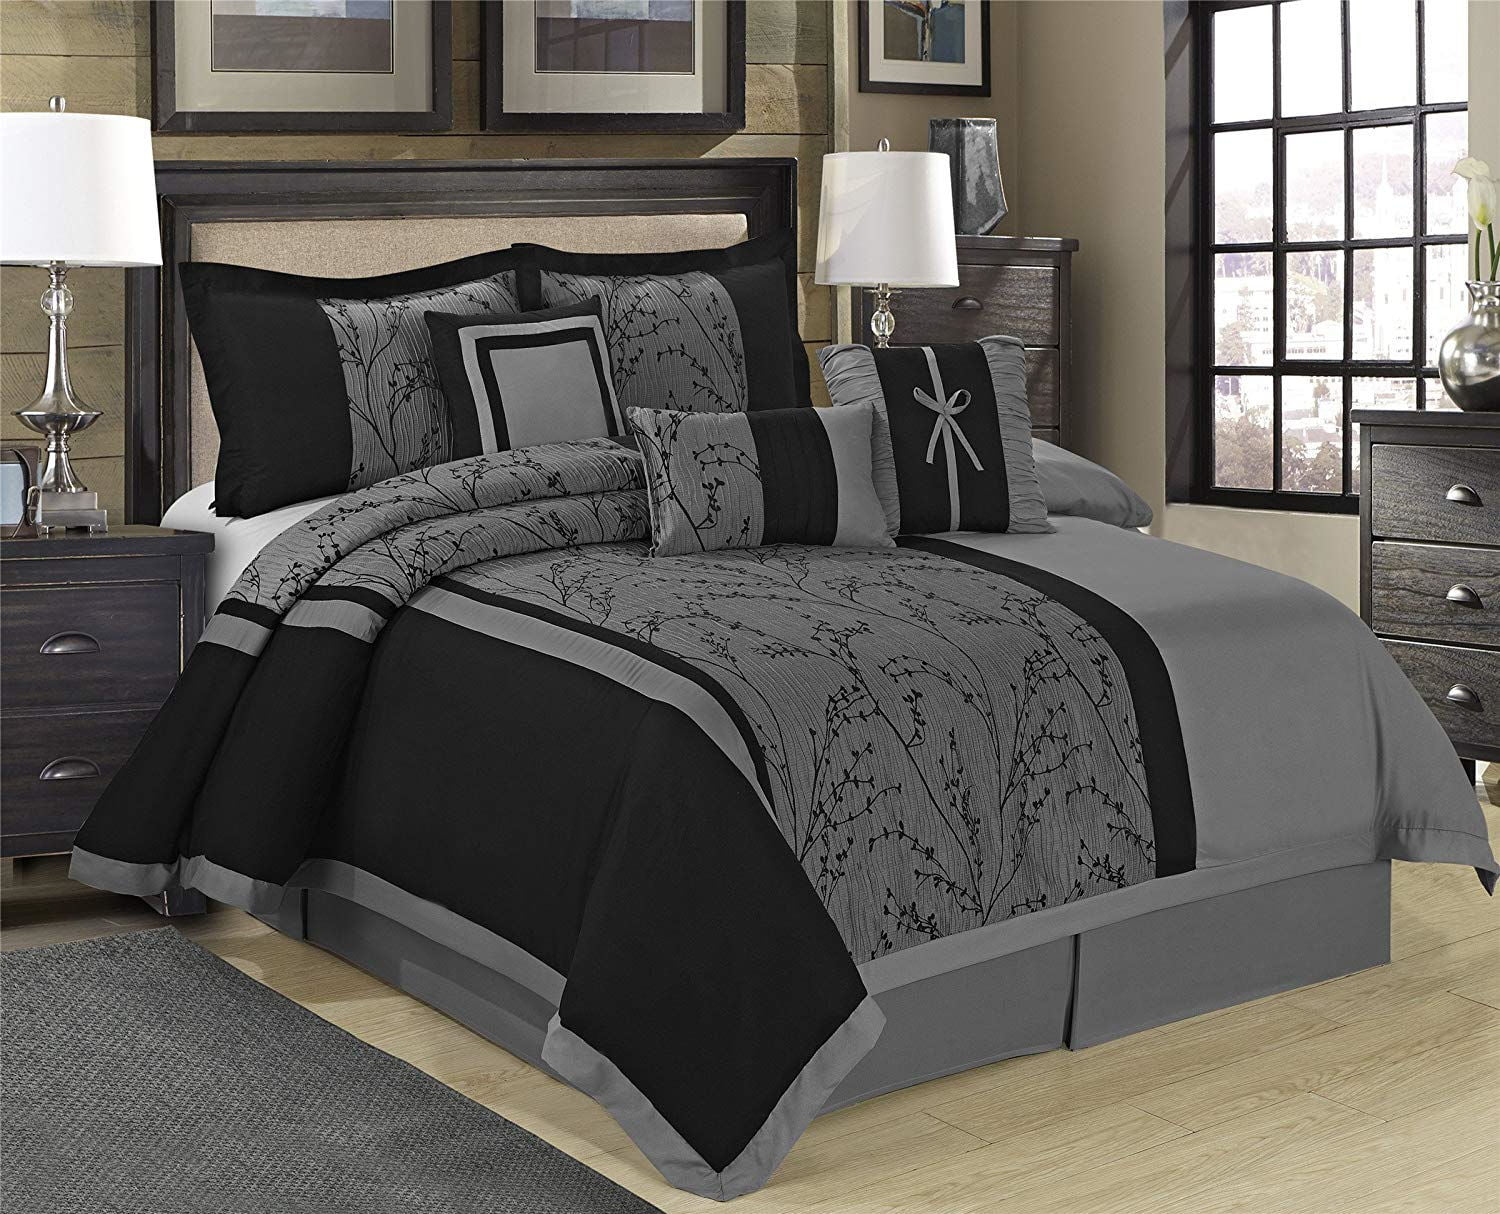 Unique Home Leticia Comforter 7 Piece Bed In A Bag Ruffled